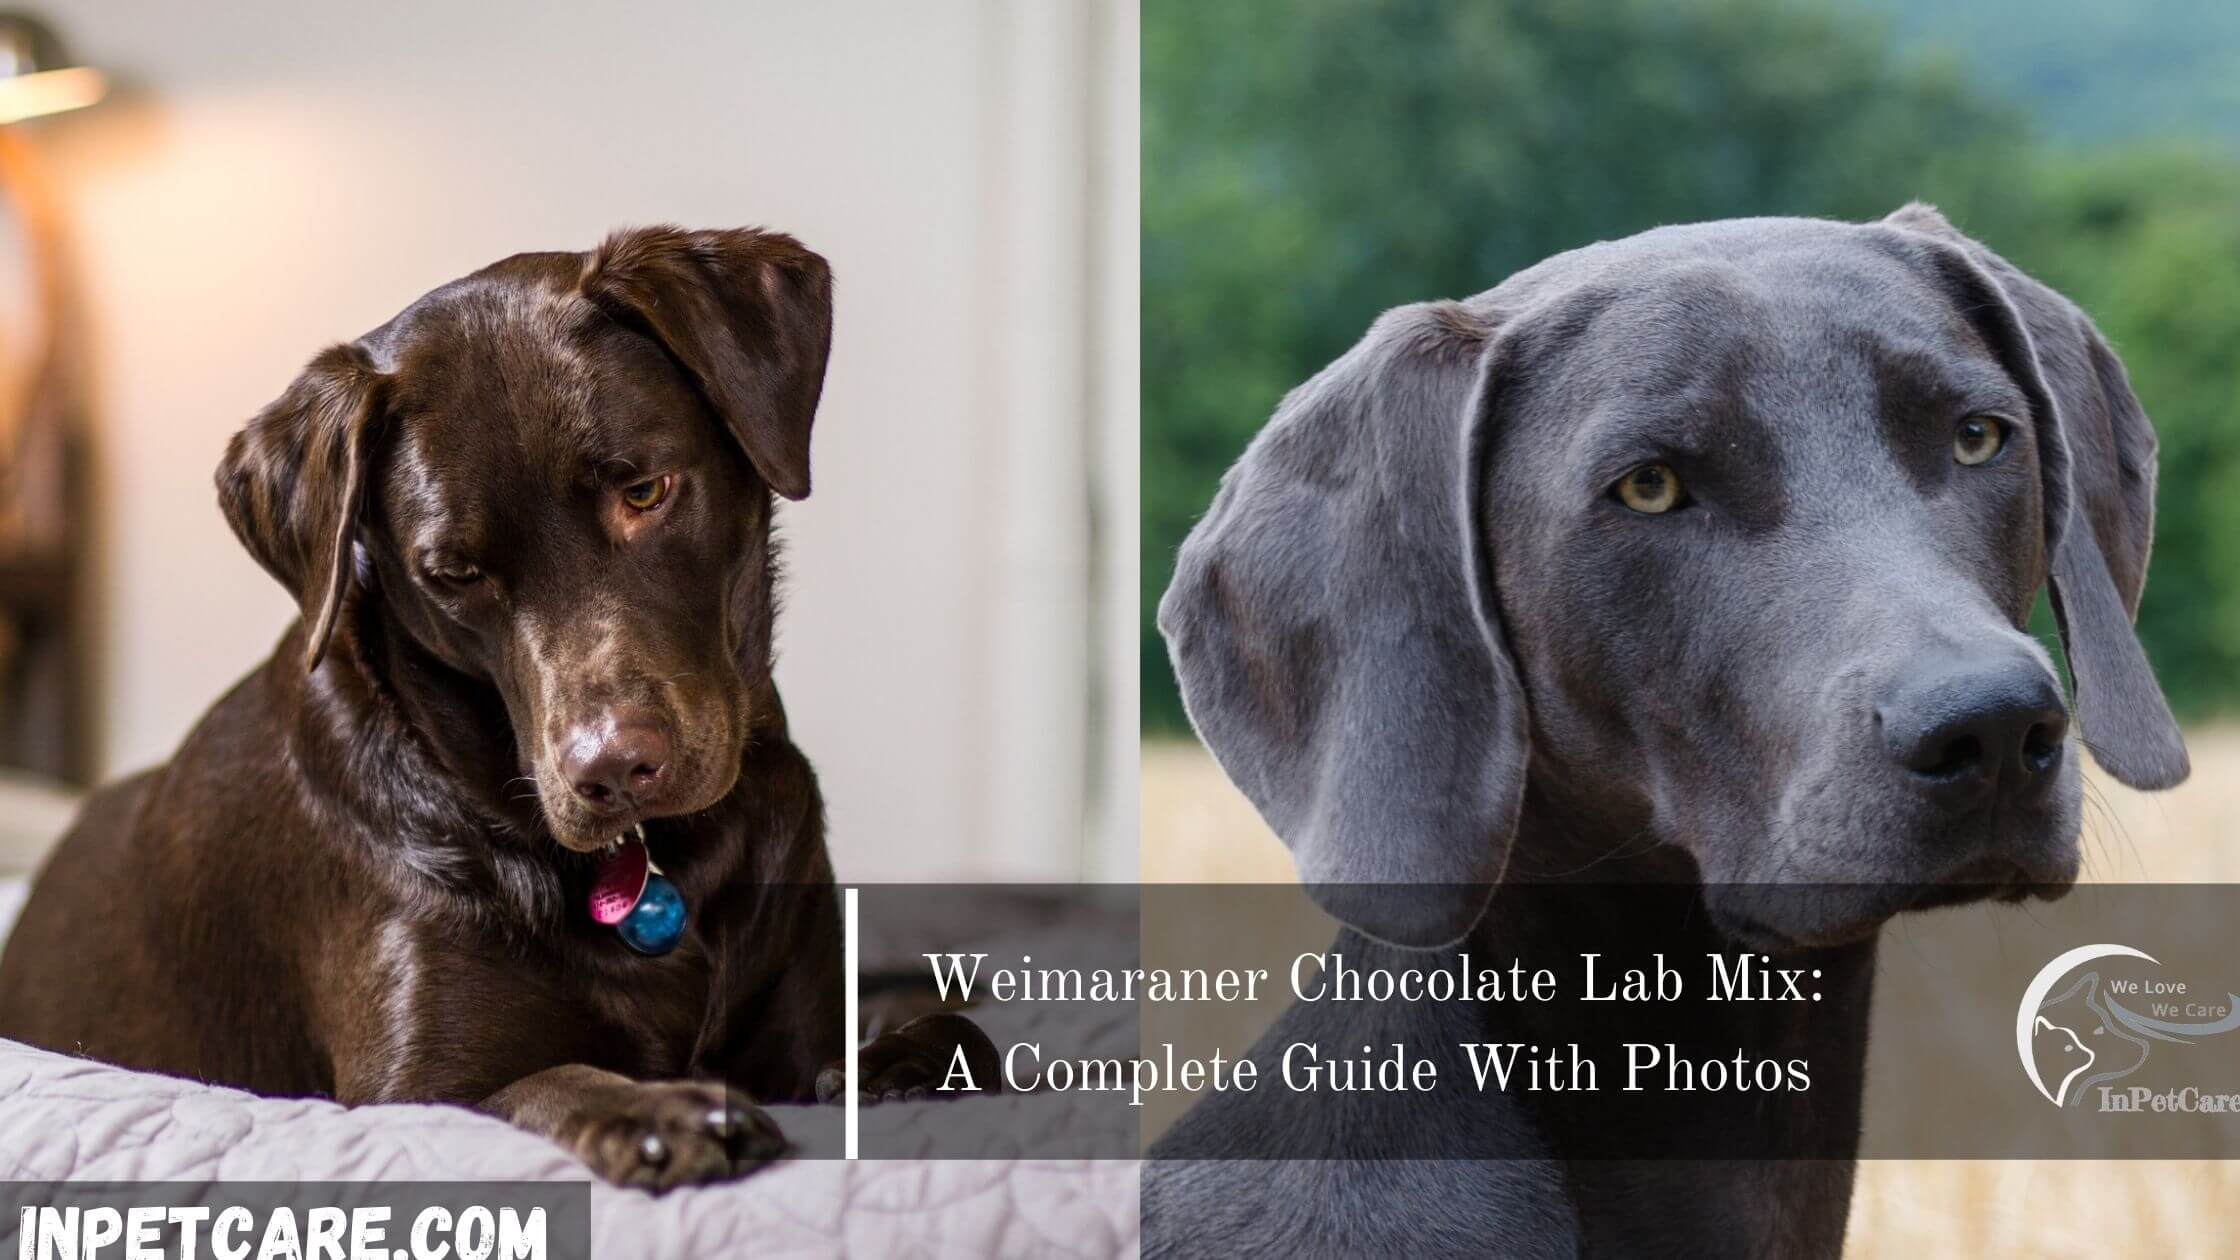 Weimaraner Chocolate Lab Mix